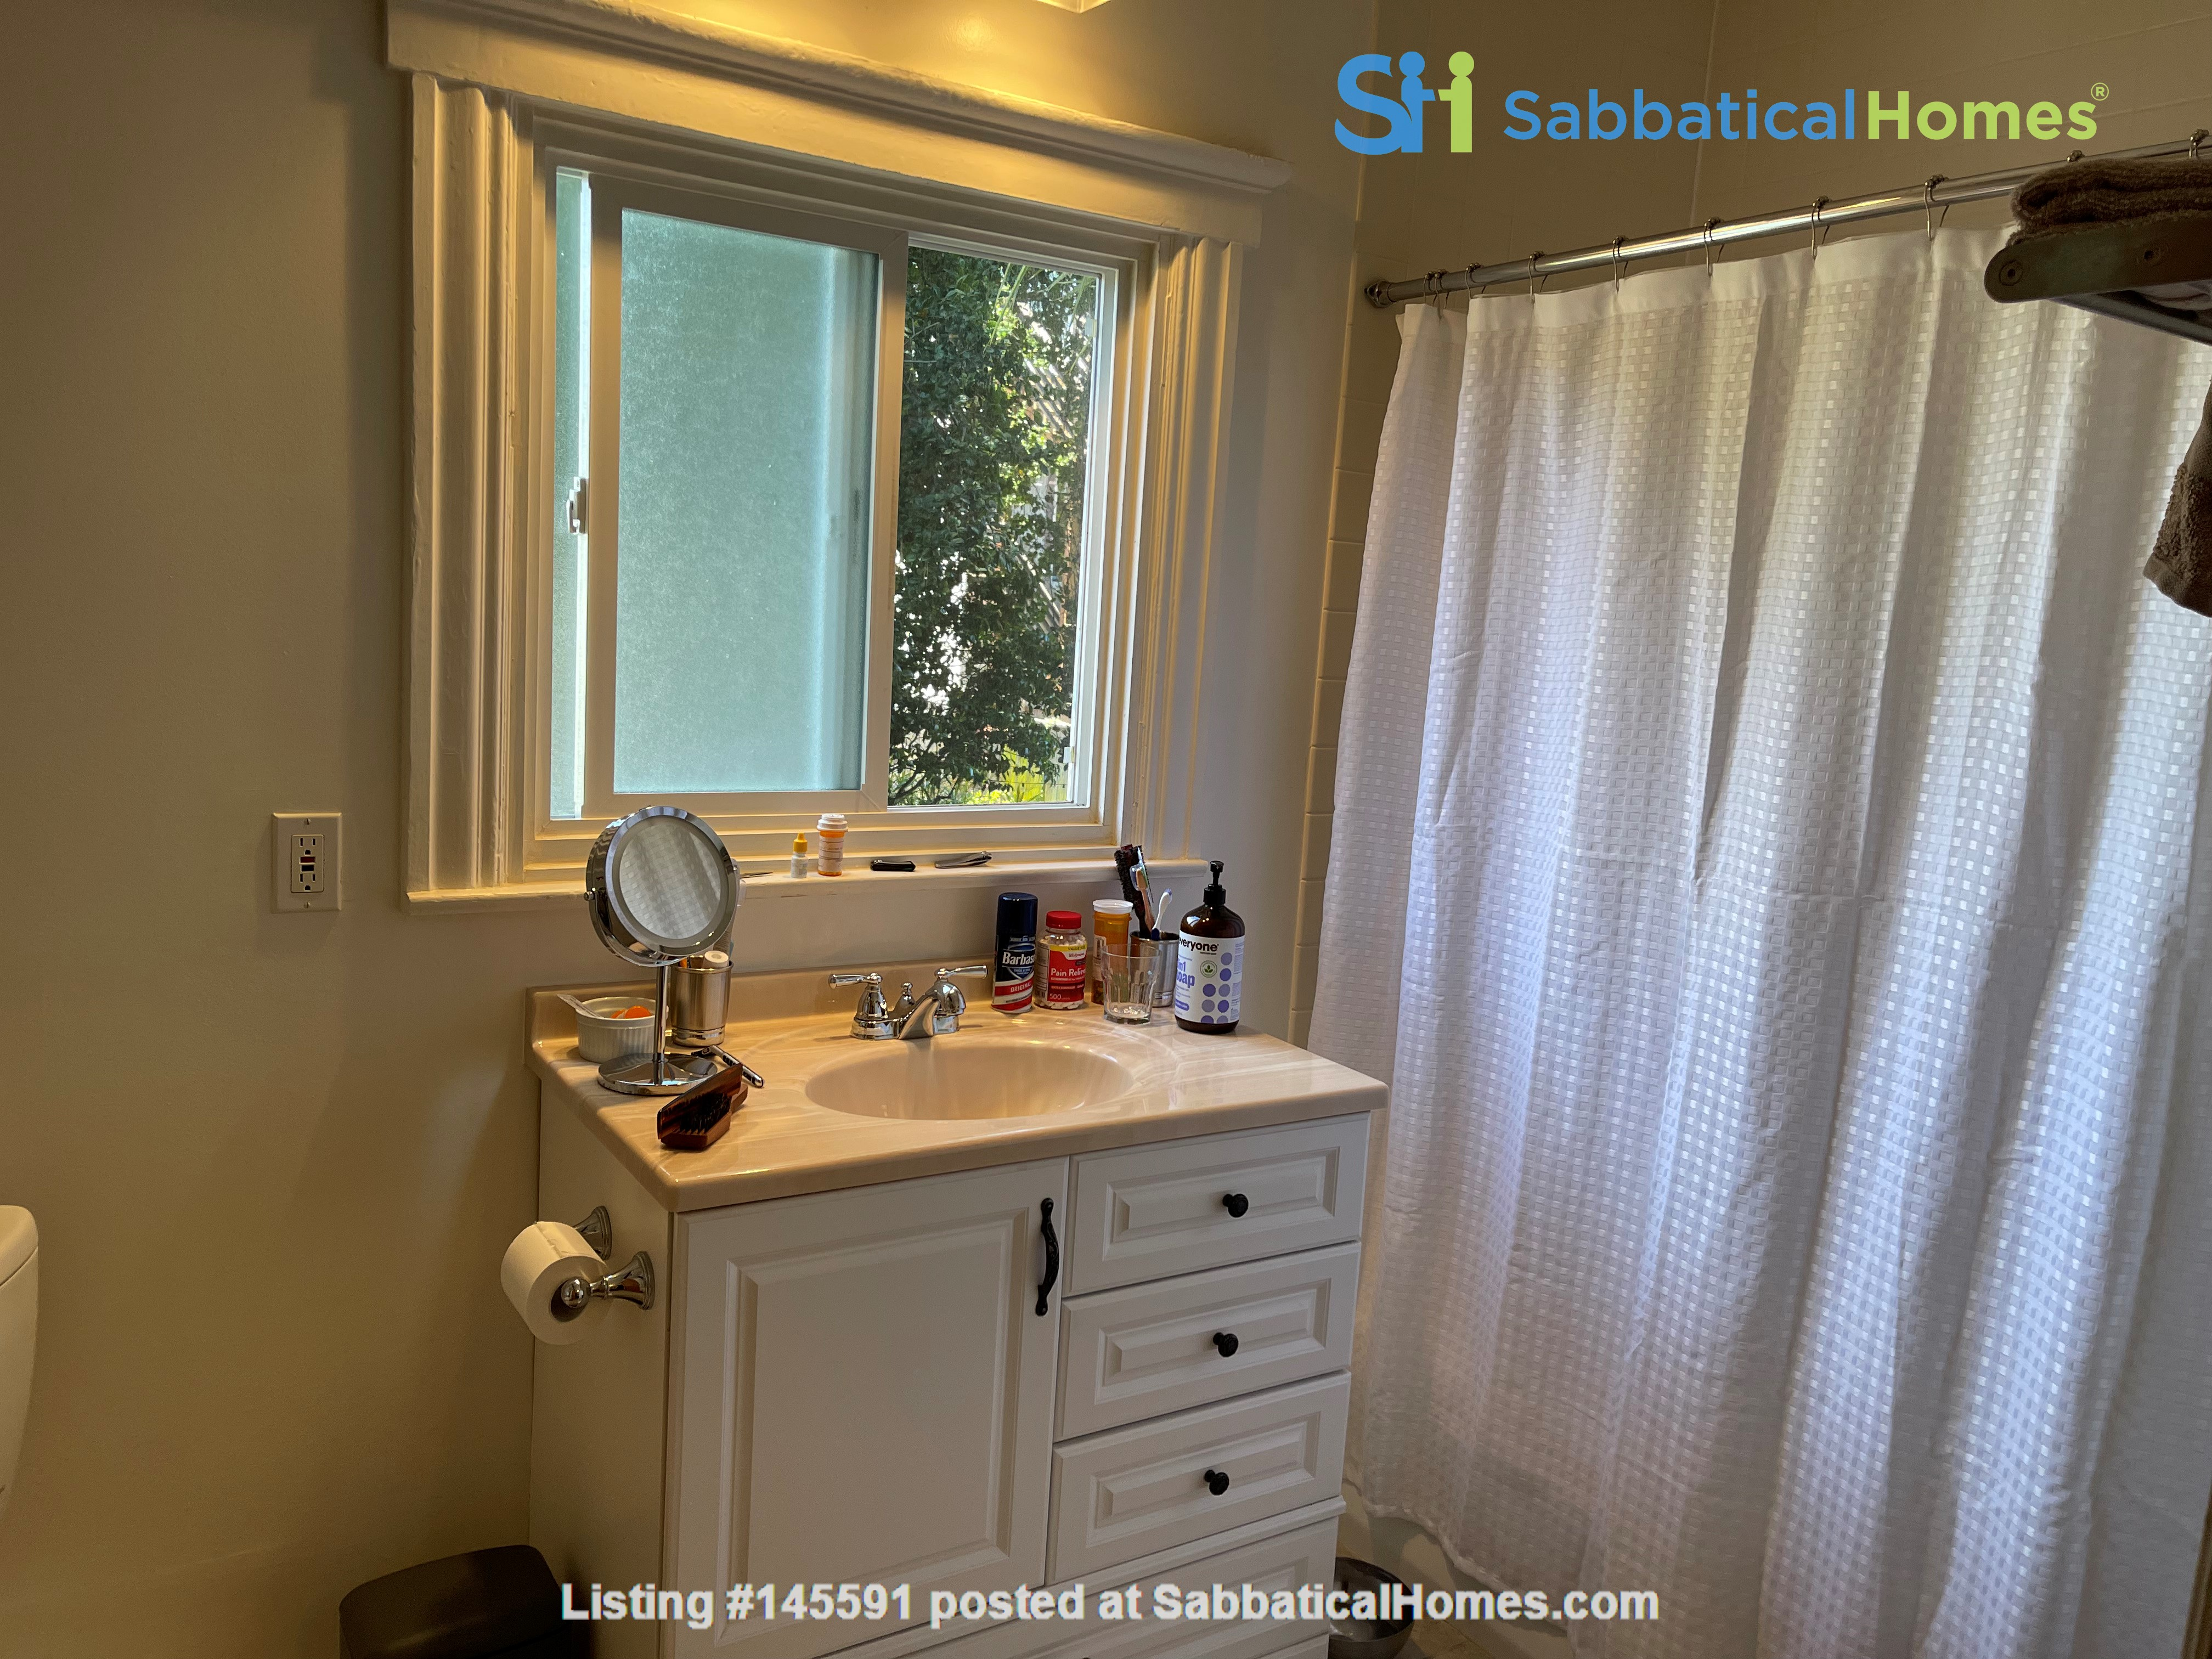 San Francisco cottage charm in a neighborhood with all the amenities Home Rental in San Francisco, California, United States 7